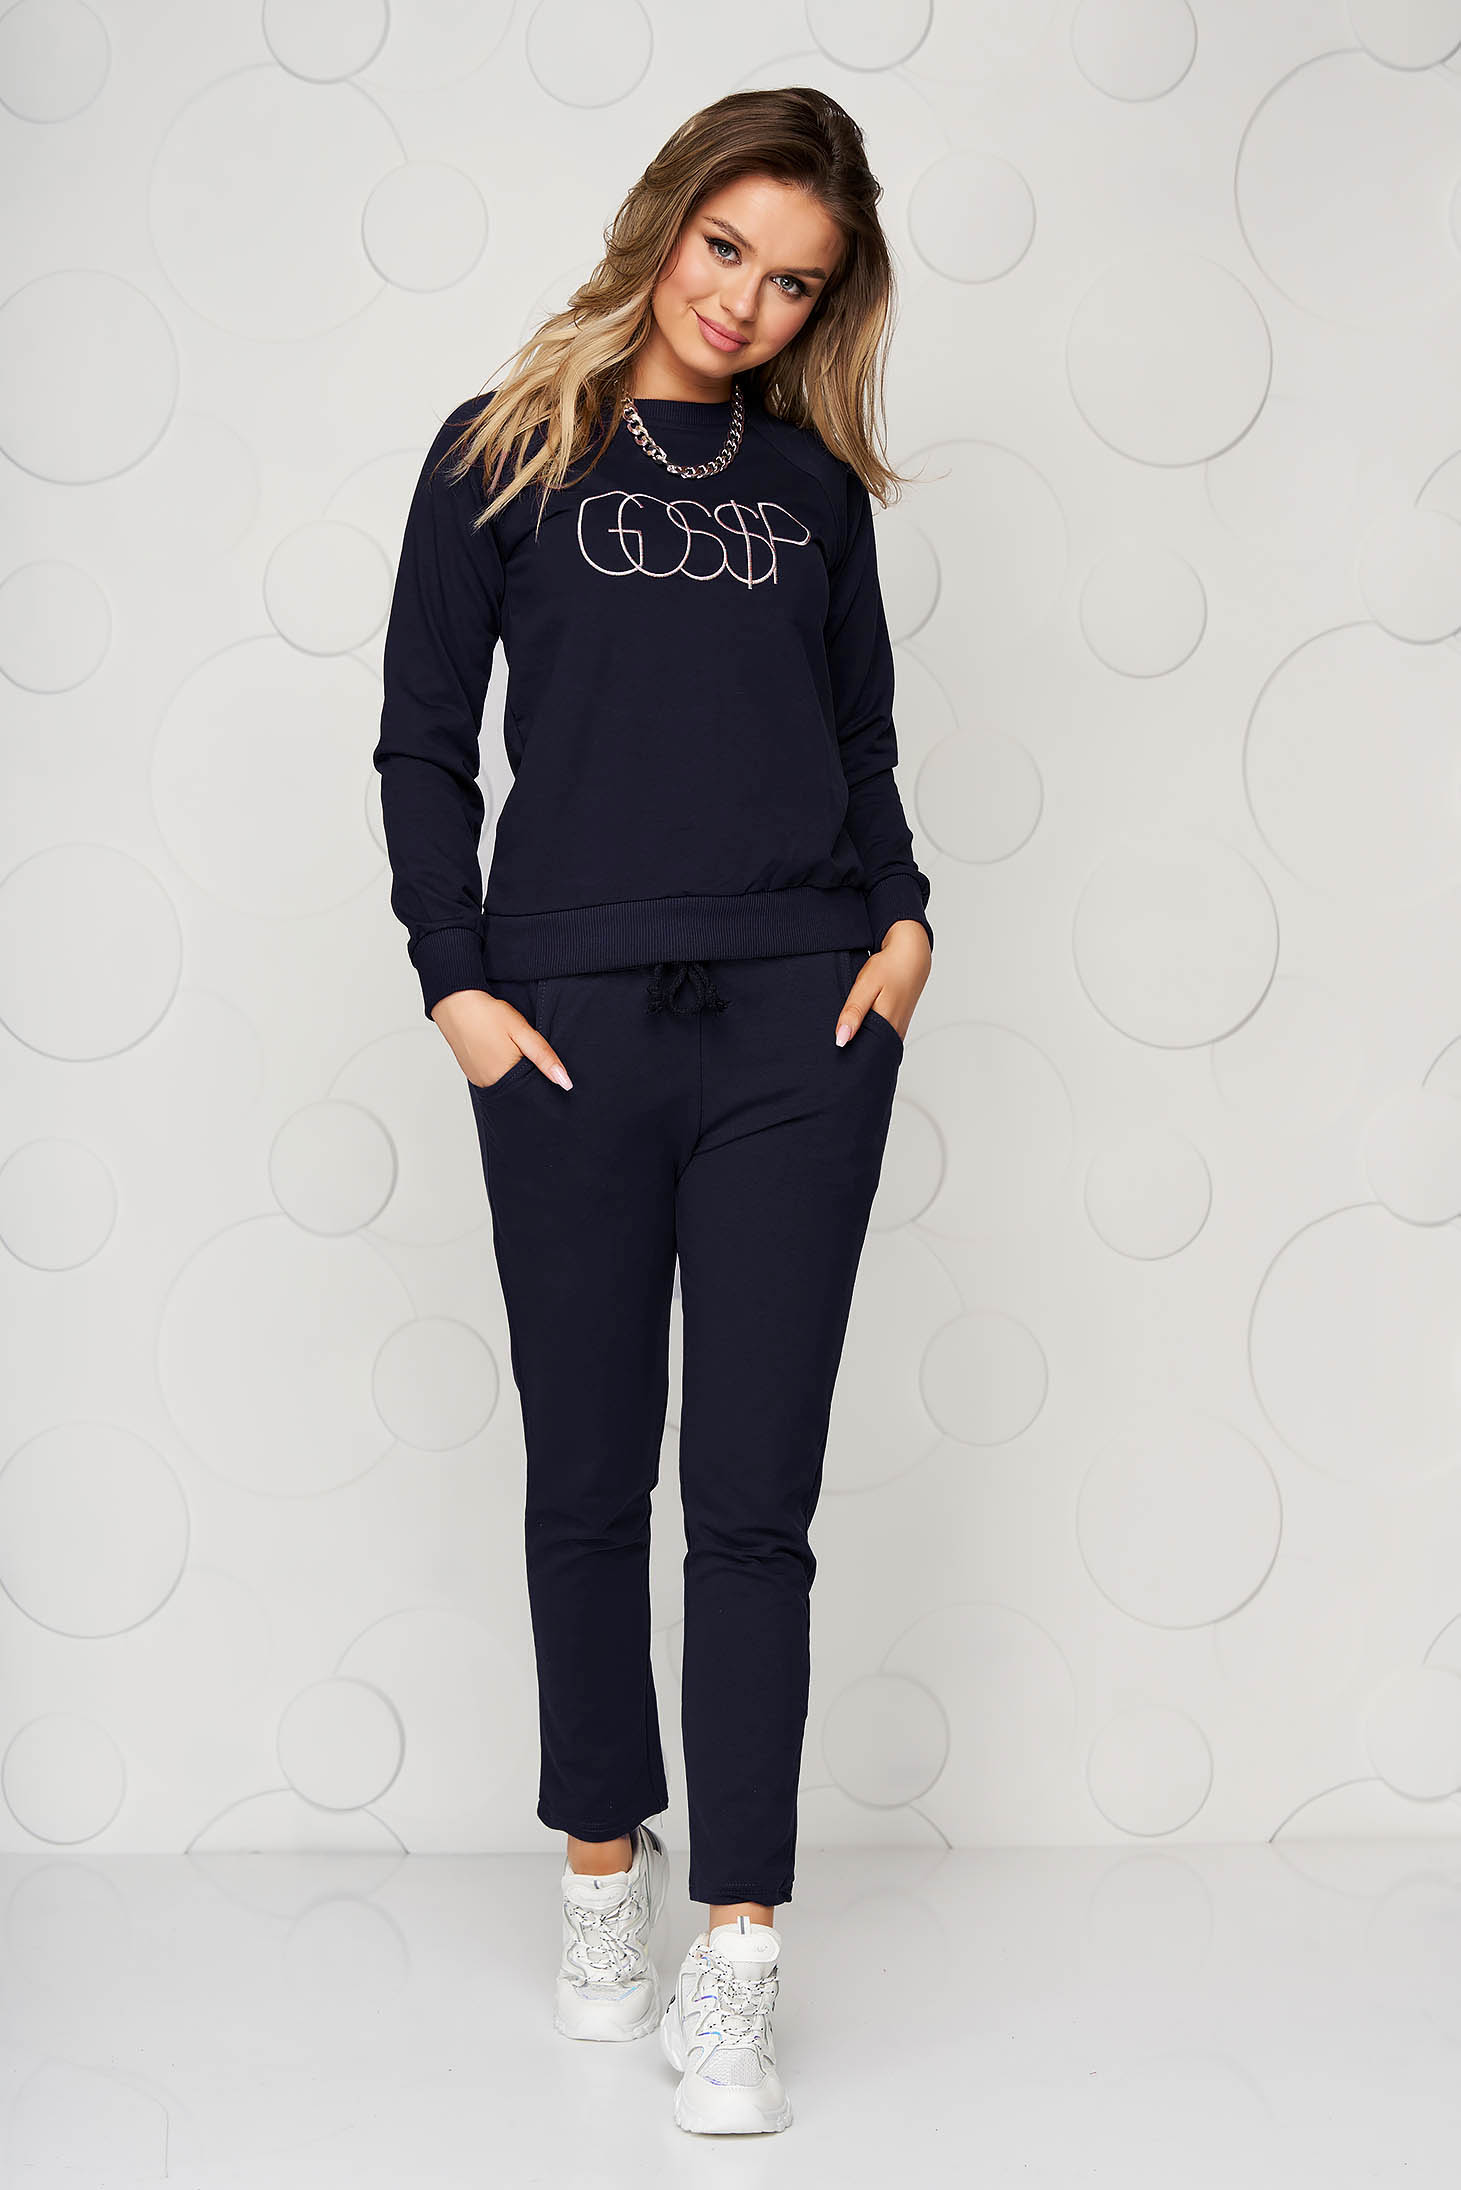 Darkblue sport 2 pieces loose fit with pockets women`s trousers